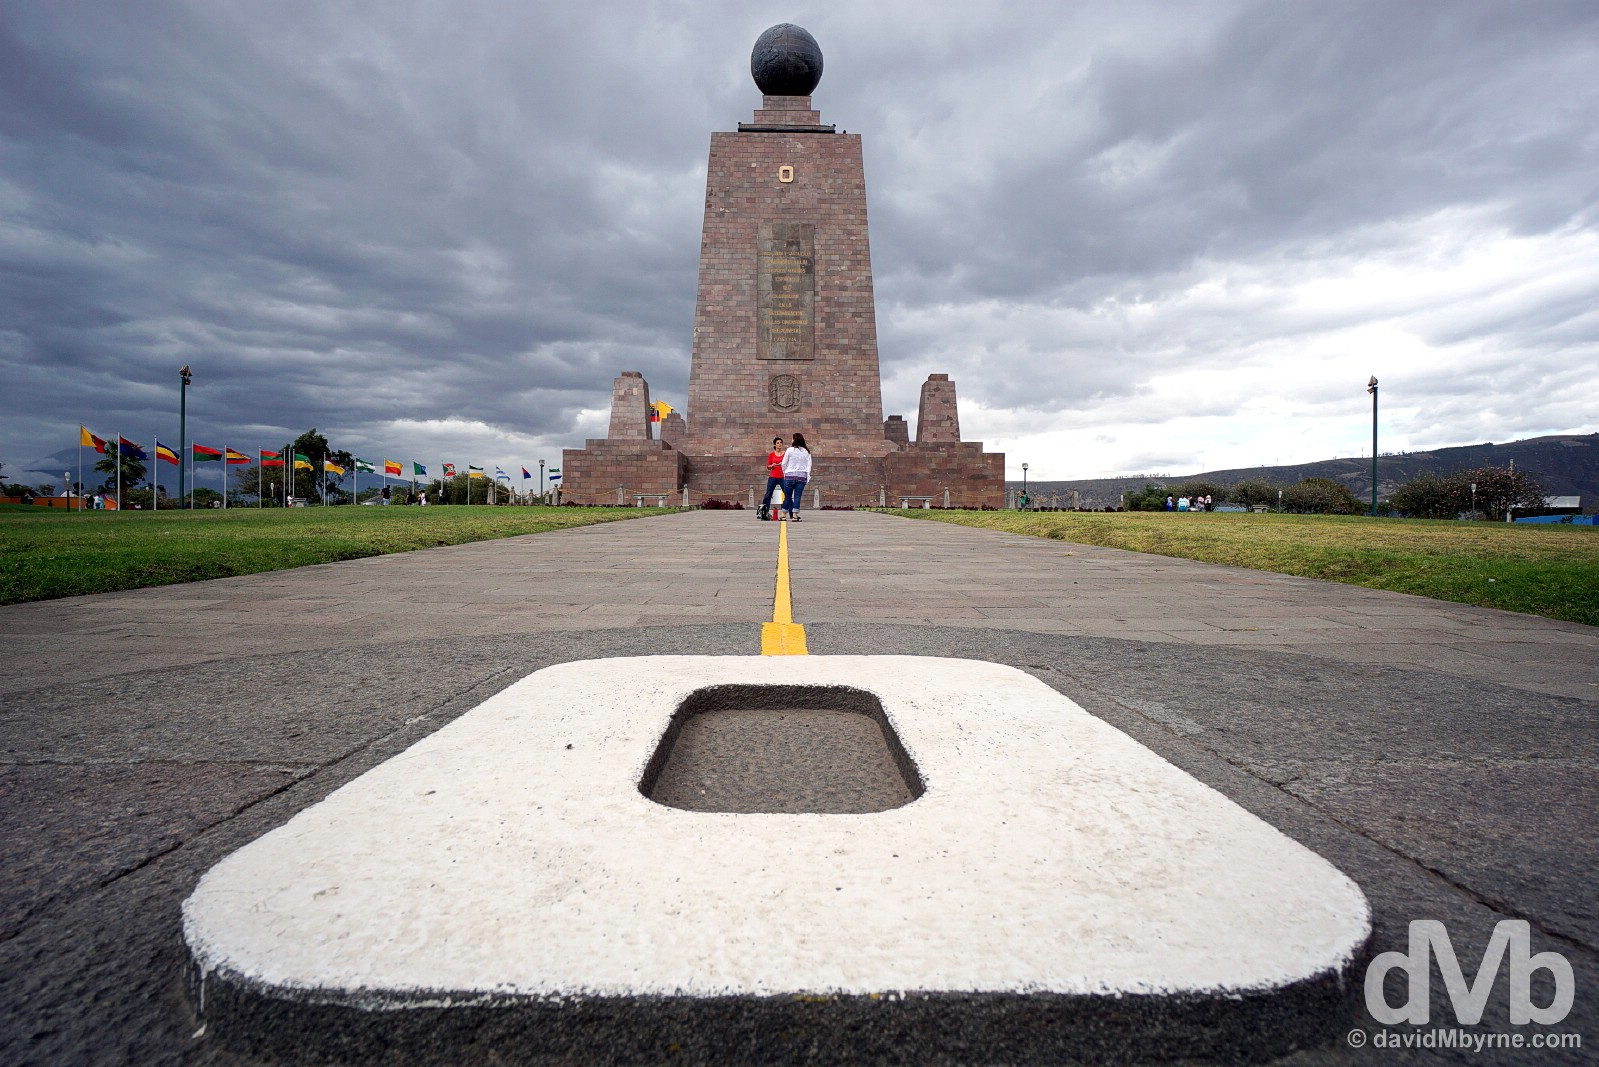 O for Oeste (West) at La Mitad del Mundo (The Middle of the World), Ecuador. July 5, 2015.